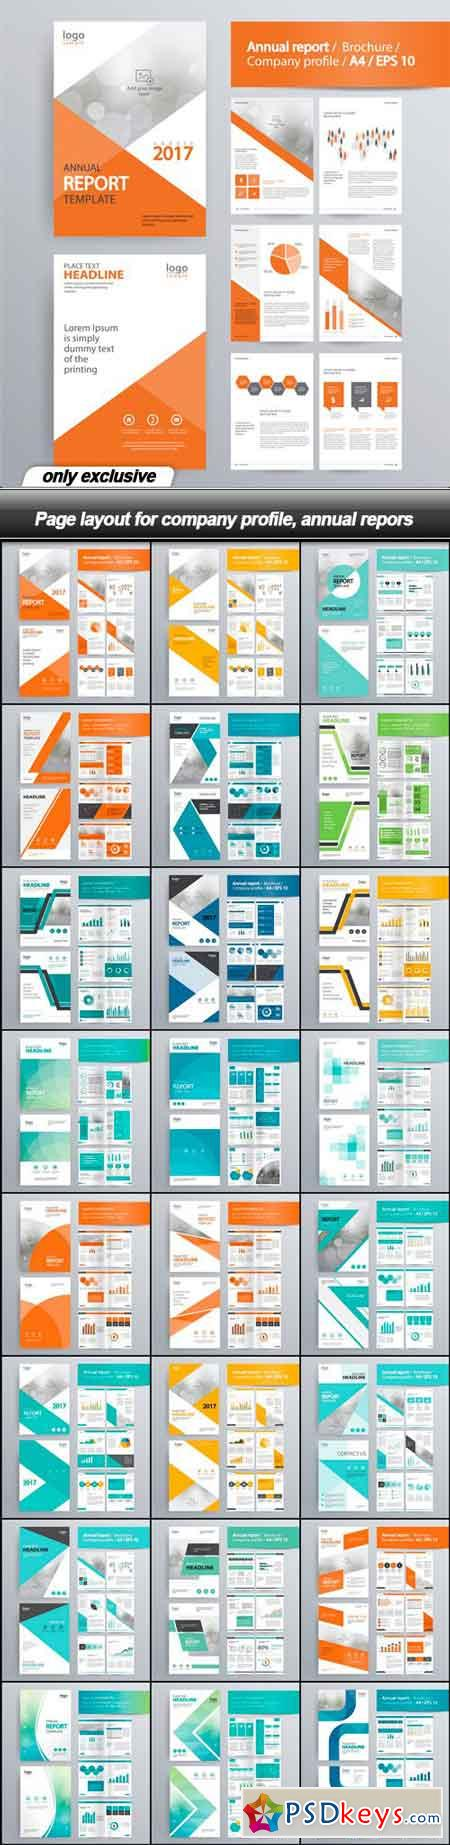 Page layout for company profile, annual reports - 24 EPS